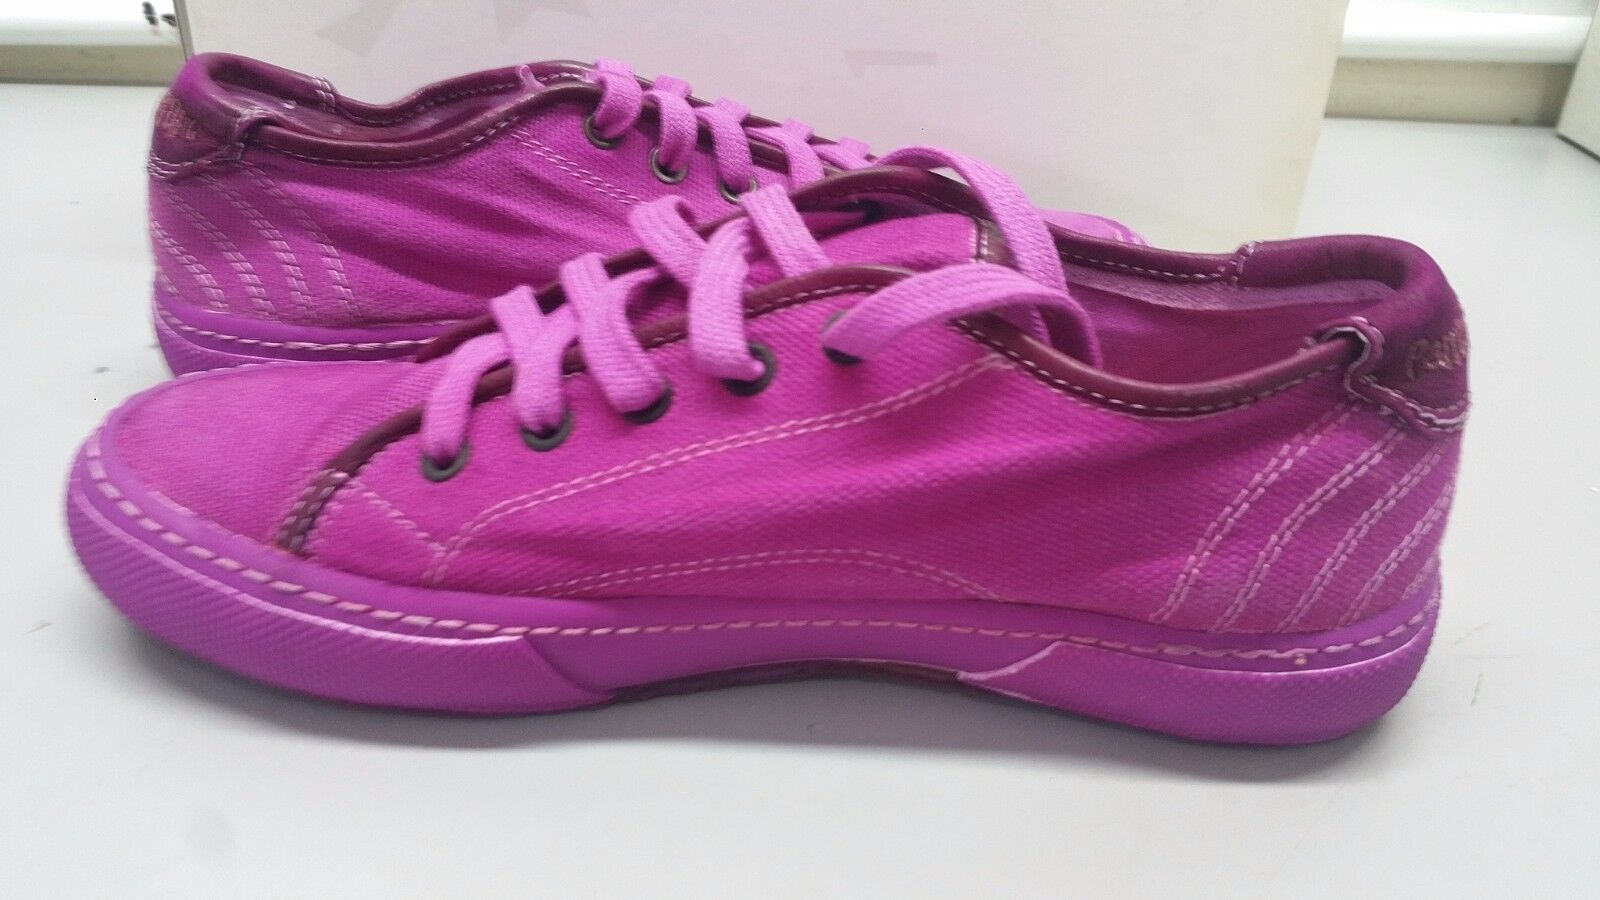 PANTOFOLA D'ORO SNEAKERS CANVAS FLUO TN36 FUXIA 42 ANEMONE FLUO CANVAS UNISEX hombre mujer f2055b